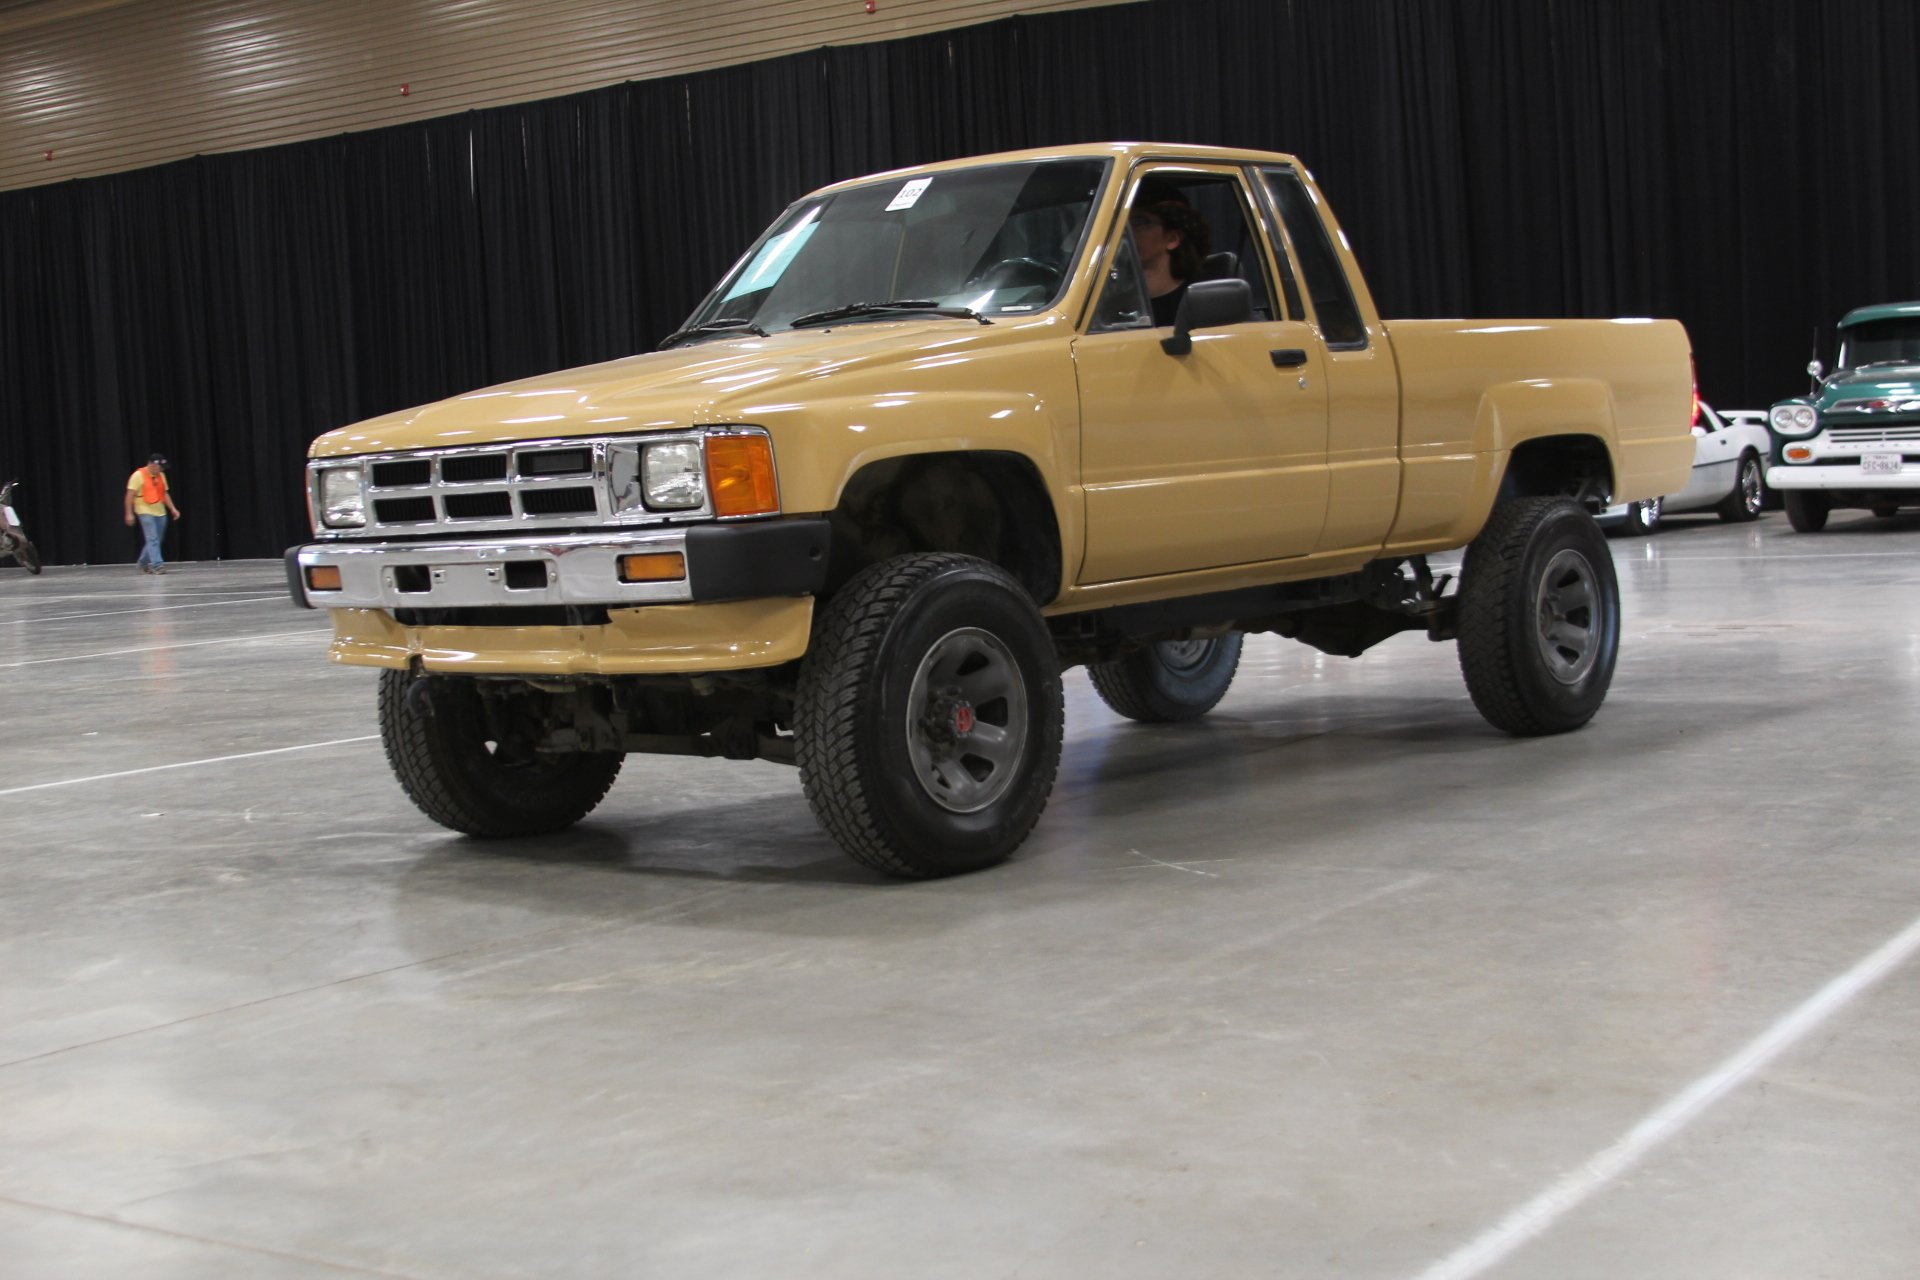 1988 toyota xtracab history channel six